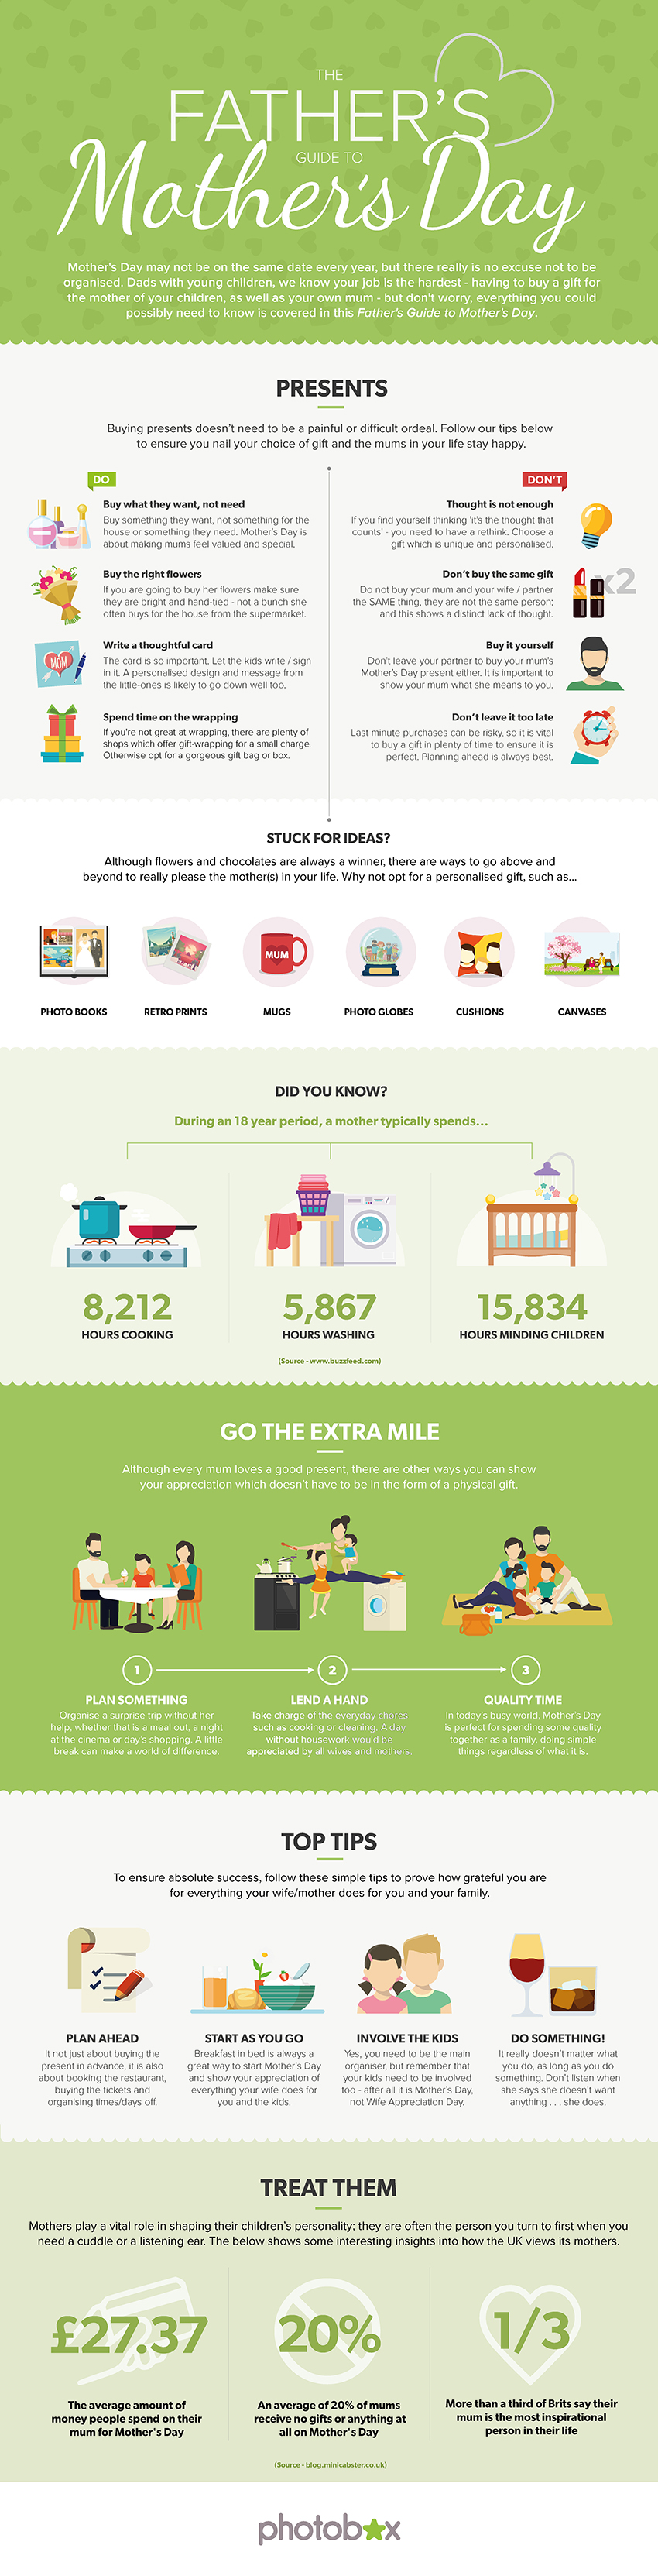 Father's guide to Mother's Day Infographic